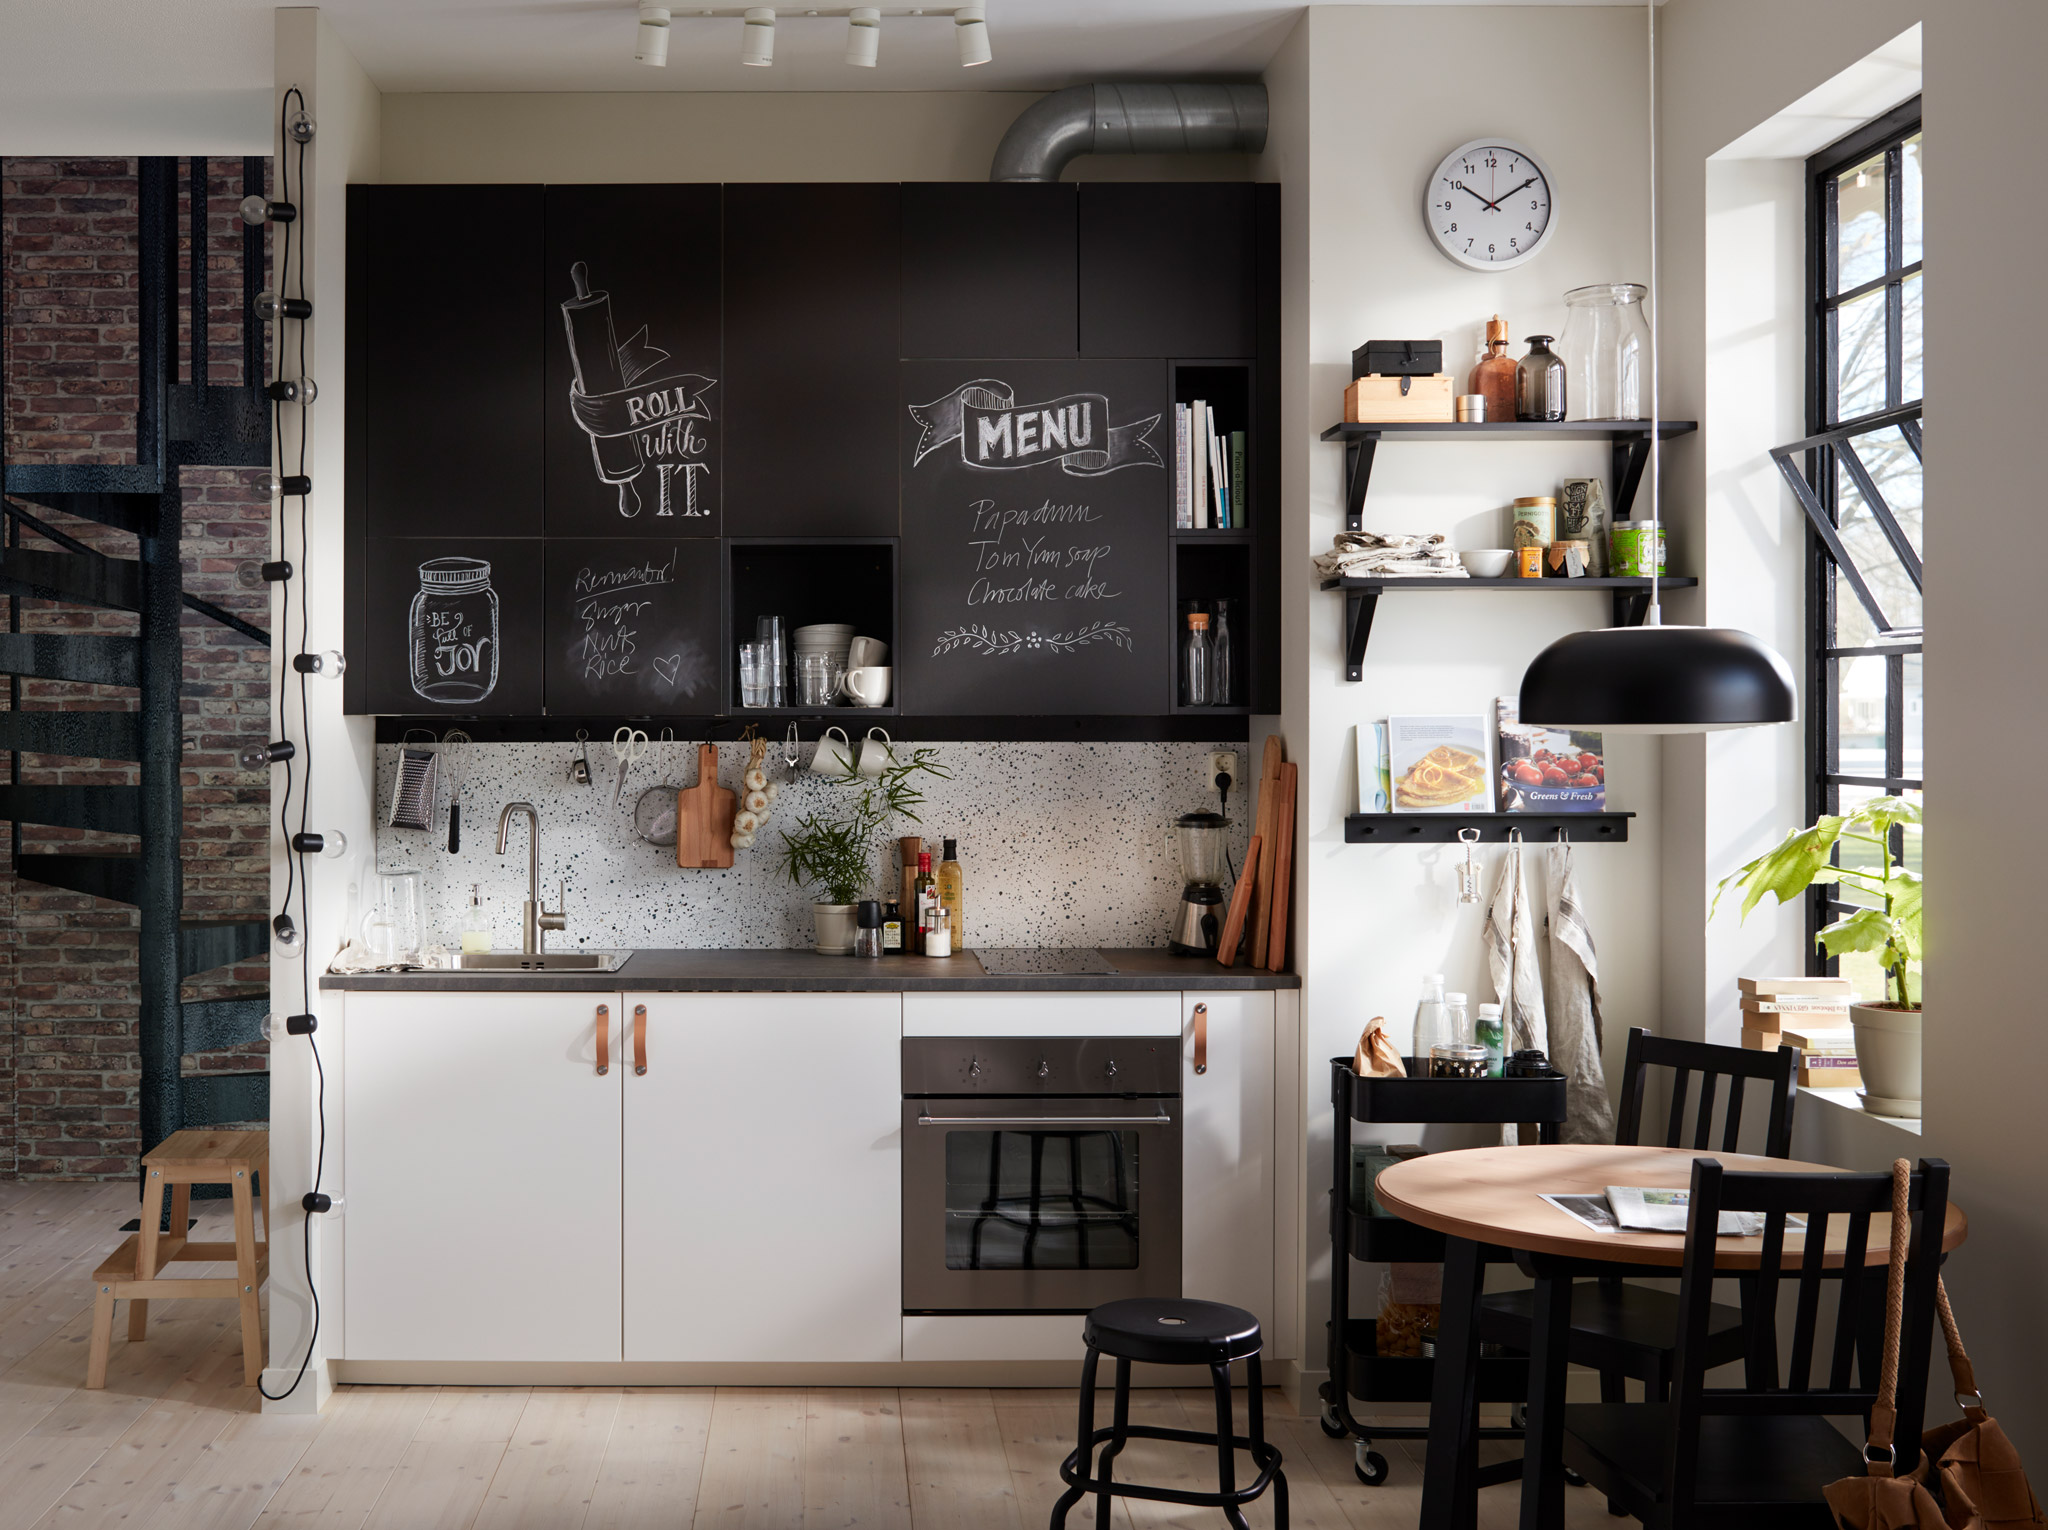 The 2018 IKEA Catalog Means New (and Discontinued) Kitchen Items